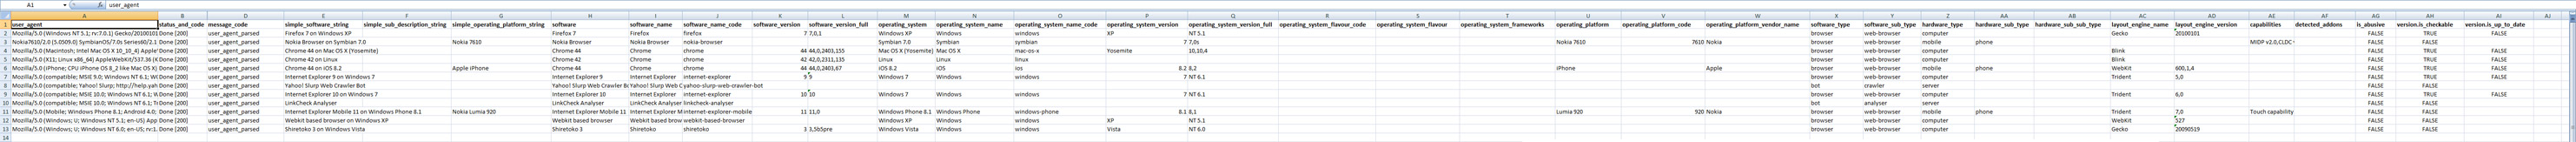 Parsing User Agents with Microsoft Excel - WhatIsMyBrowser com